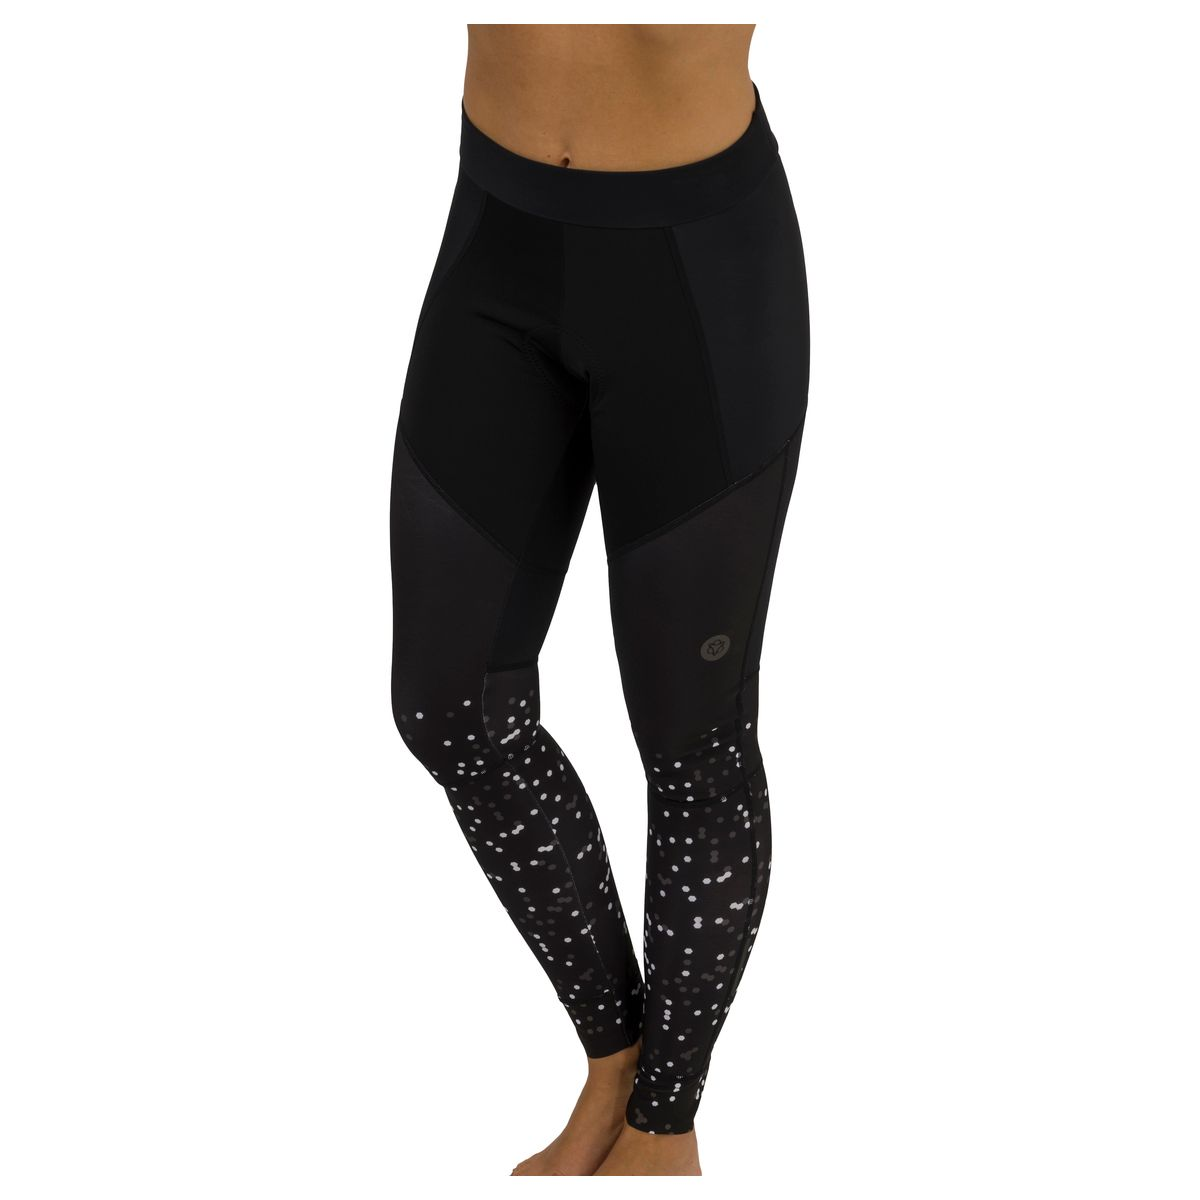 Fiesta Prime Tight Trend Dames fit example